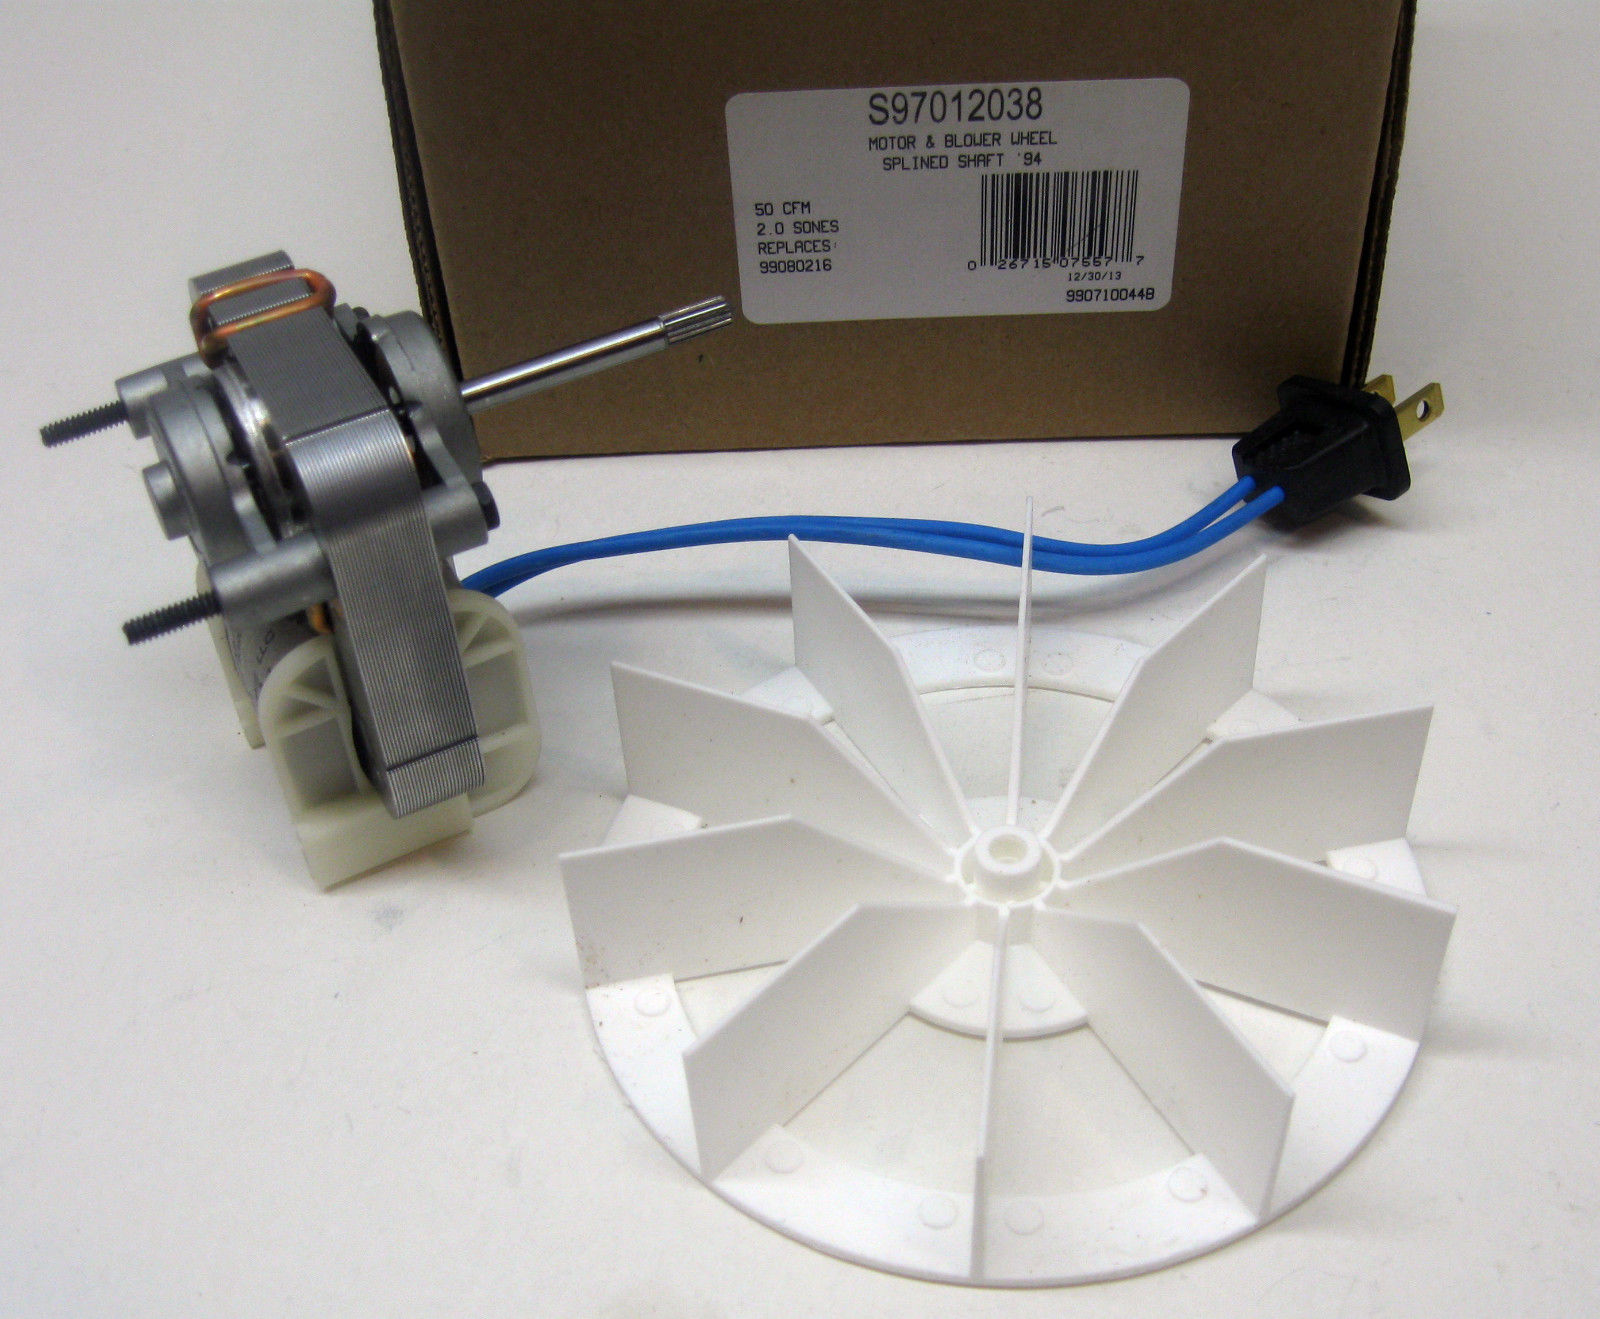 S97012038 Broan Nautilus Vent Fan Motor Amp Wheel 50 Cfm 2